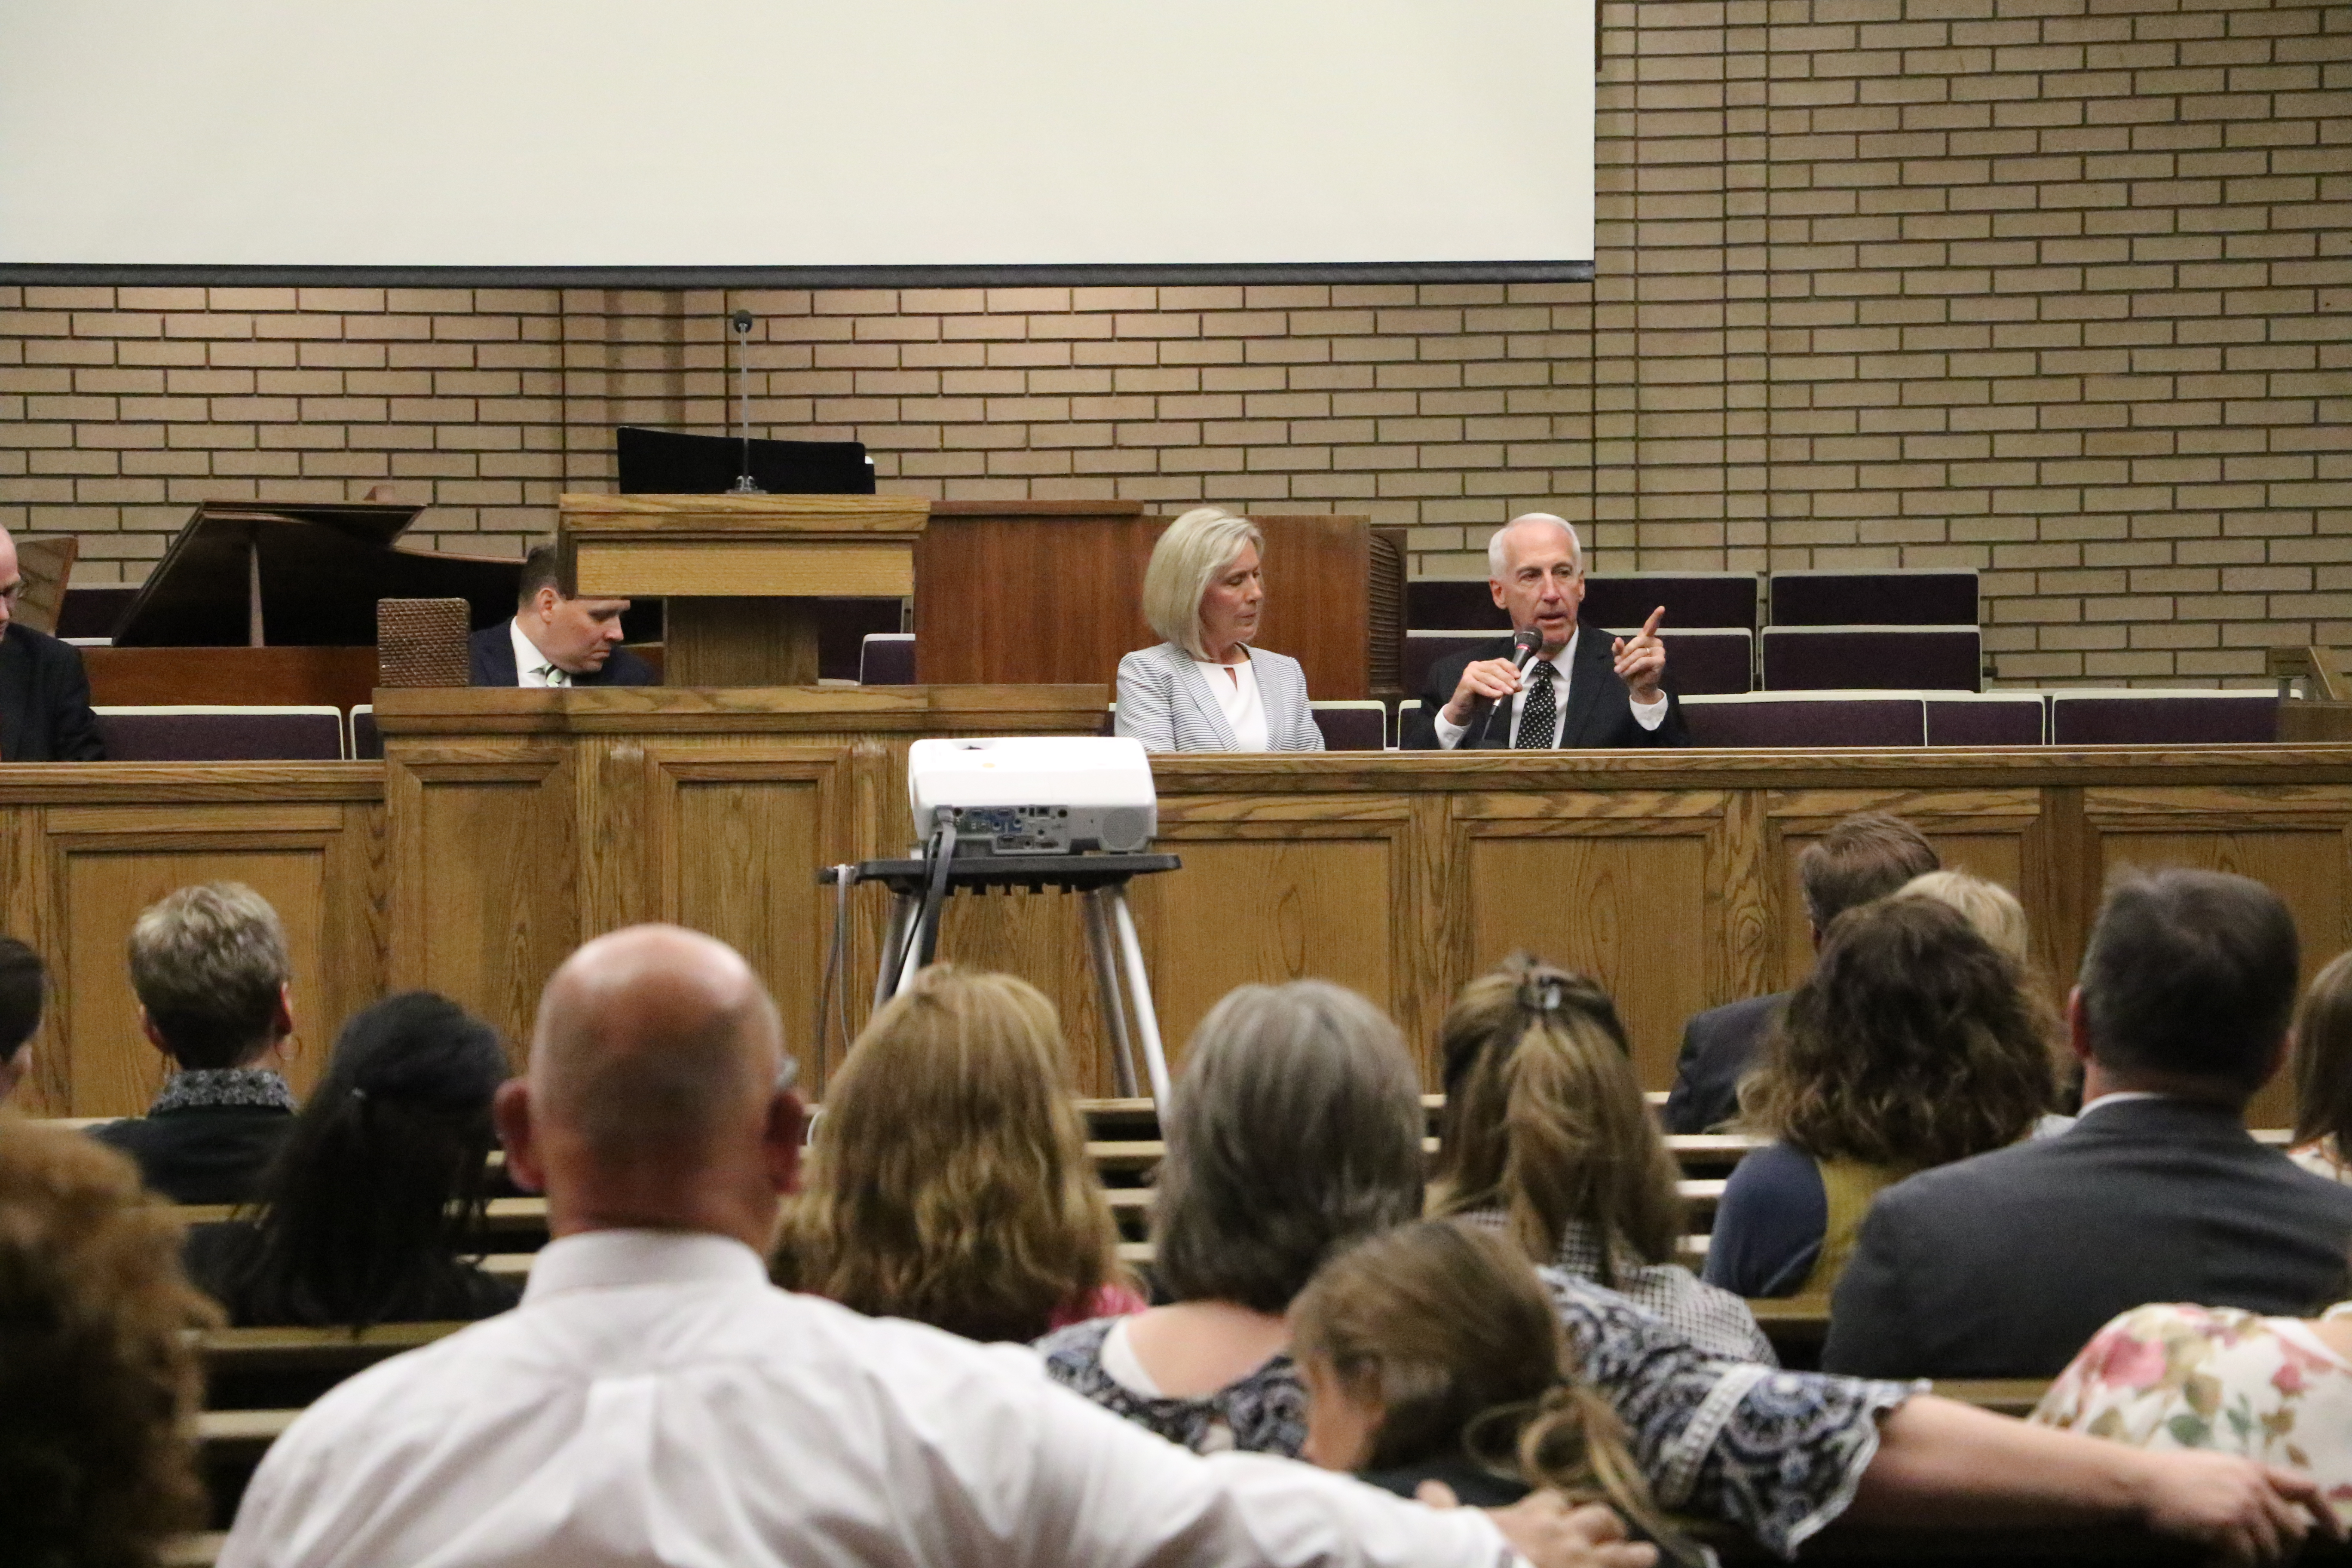 Sister Joy D. Jones and her husband Robert B. Jones answer questions as part of a panel discussion following a devotional on religious freedom and civic responsibility in Holladay, Utah, on Sept. 22, 2019.